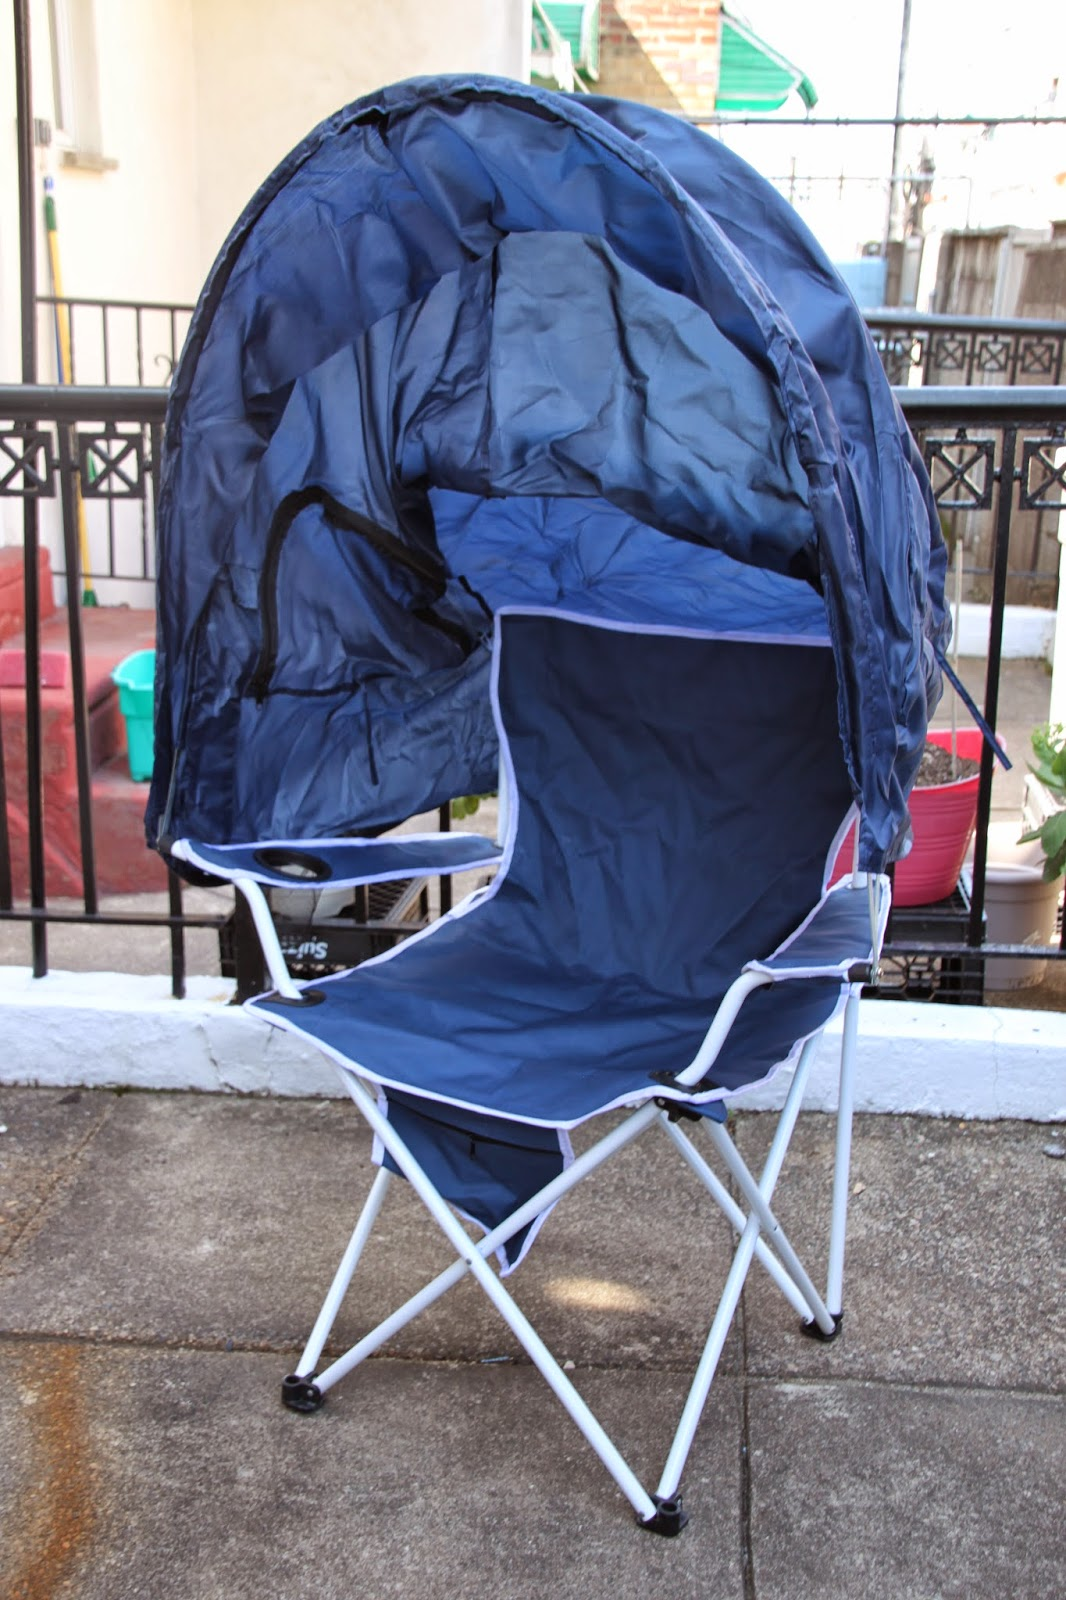 Camp Chair With Canopy Folding Replacement Parts Susan 39s Disney Family Shop Brylanehome For Furniture